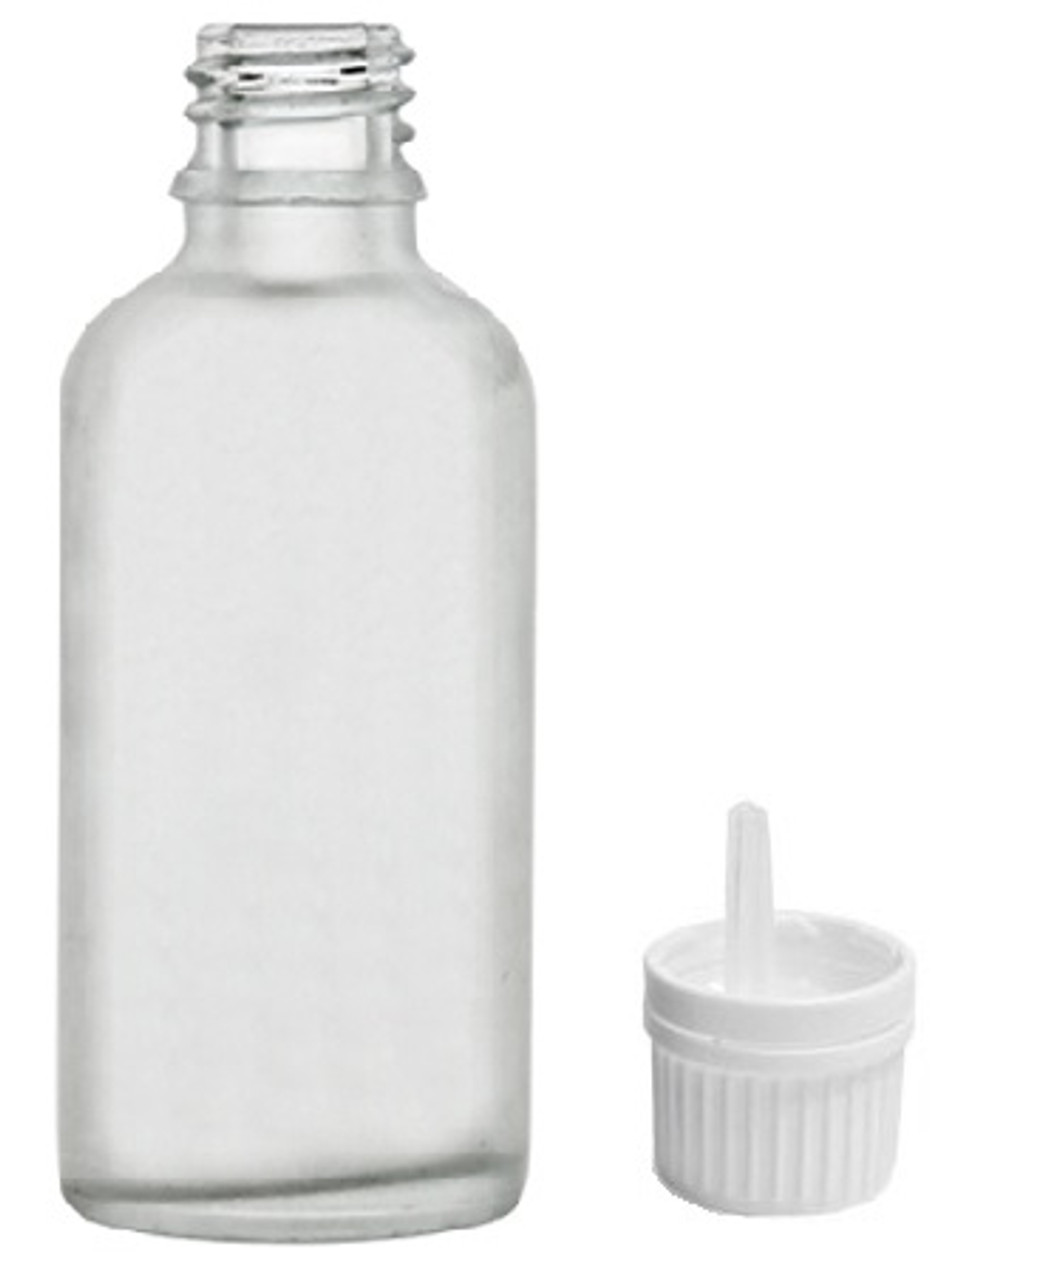 30 ml Clear Frosted Euro Dropper Glass Bottle for Essential Oils with White Tamper Evident Euro Dropper (1 oz)